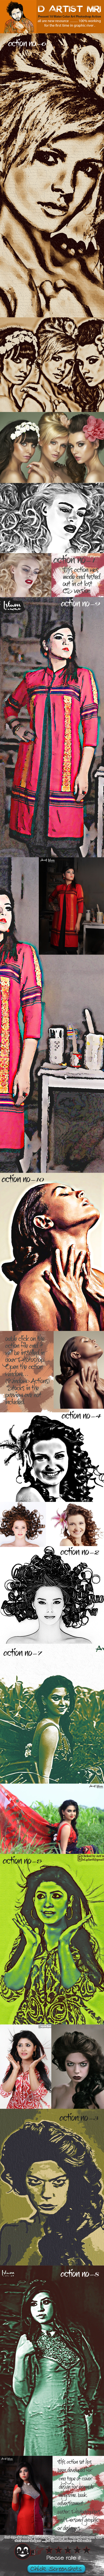 Pure Water & Oil Color Art - Actions Photoshop